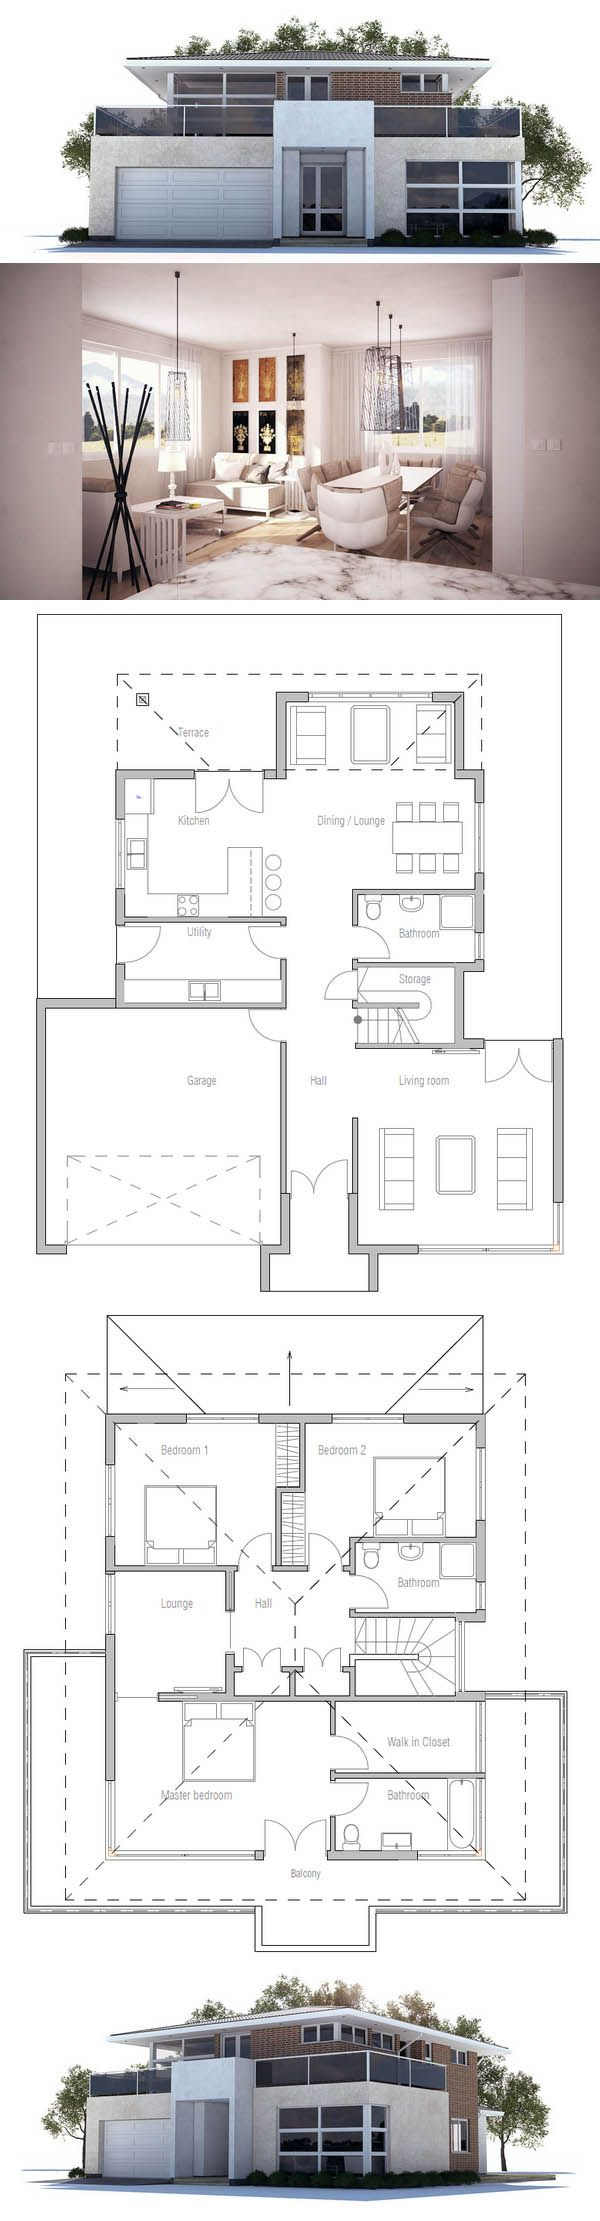 Autocad house drawings free download woodworking Autocad house drawings